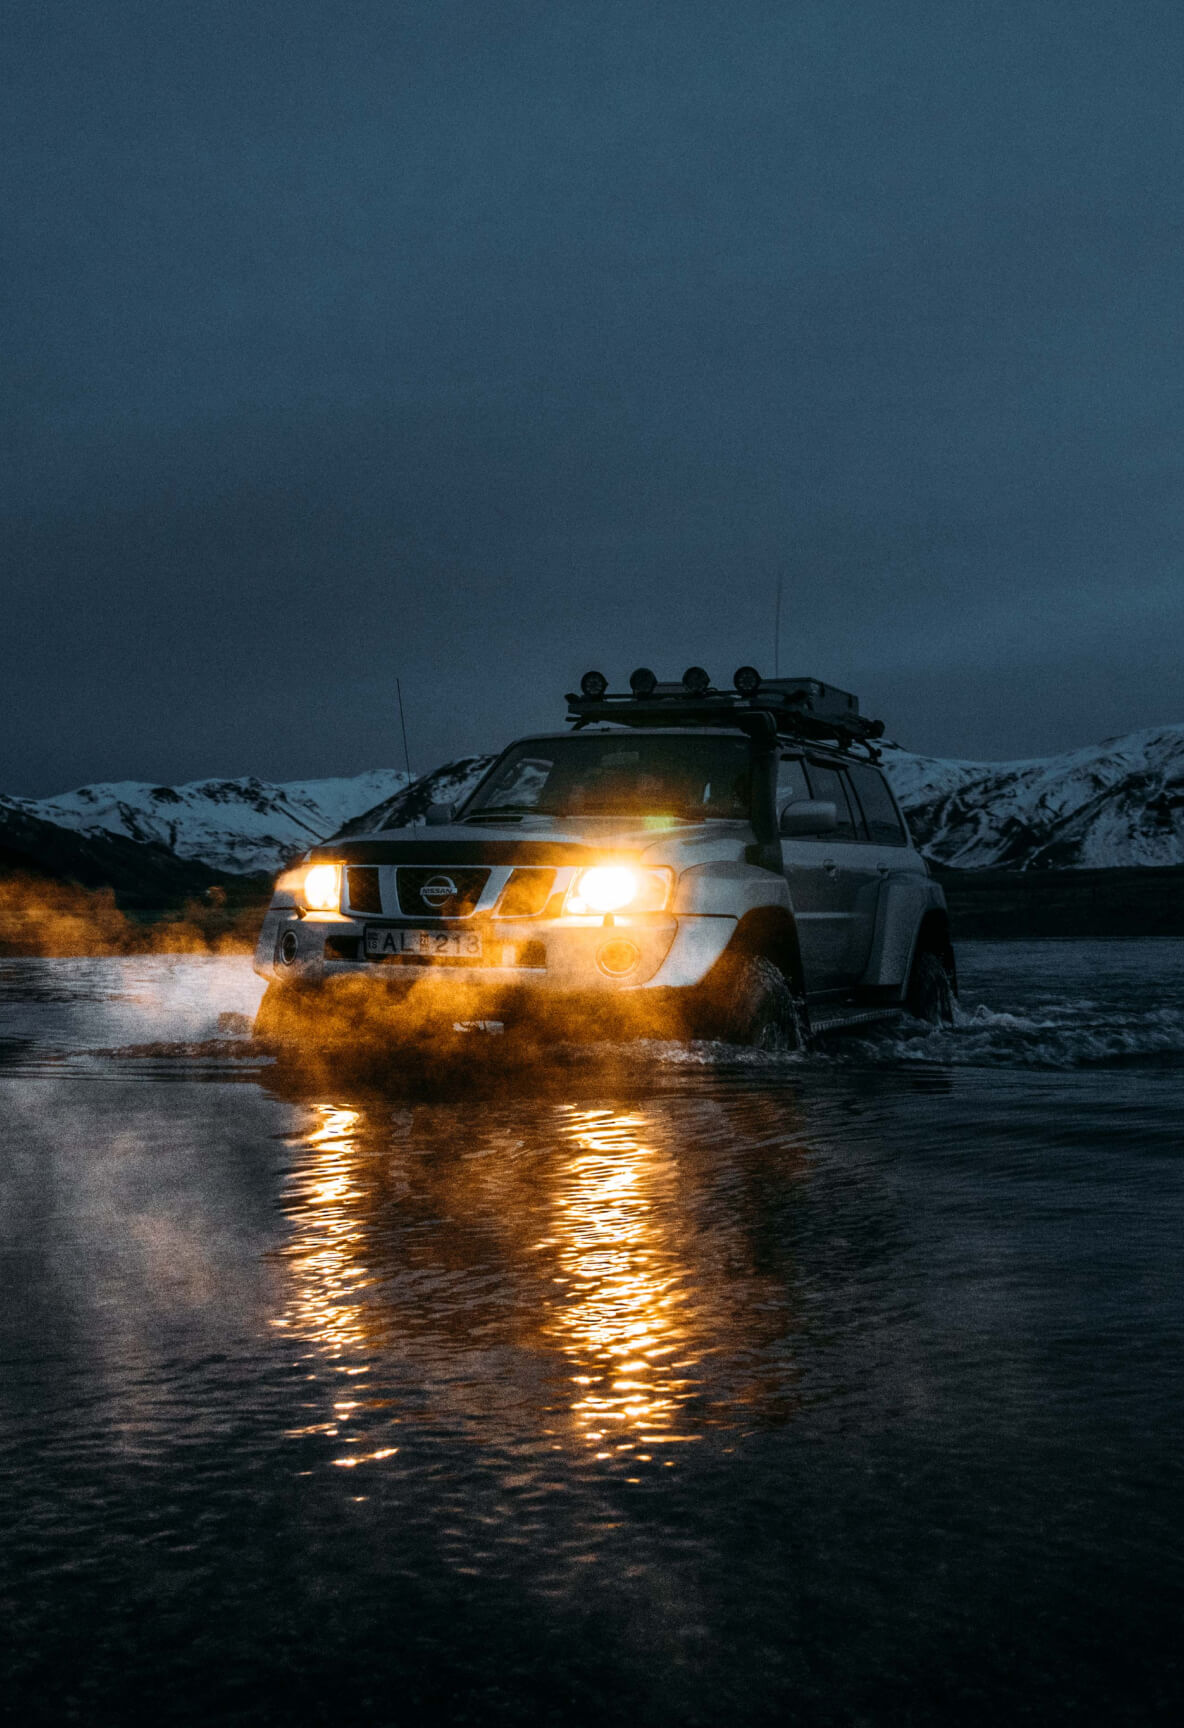 This Nissan jeep will take you off-road, to areas of Iceland that are hard to reach.